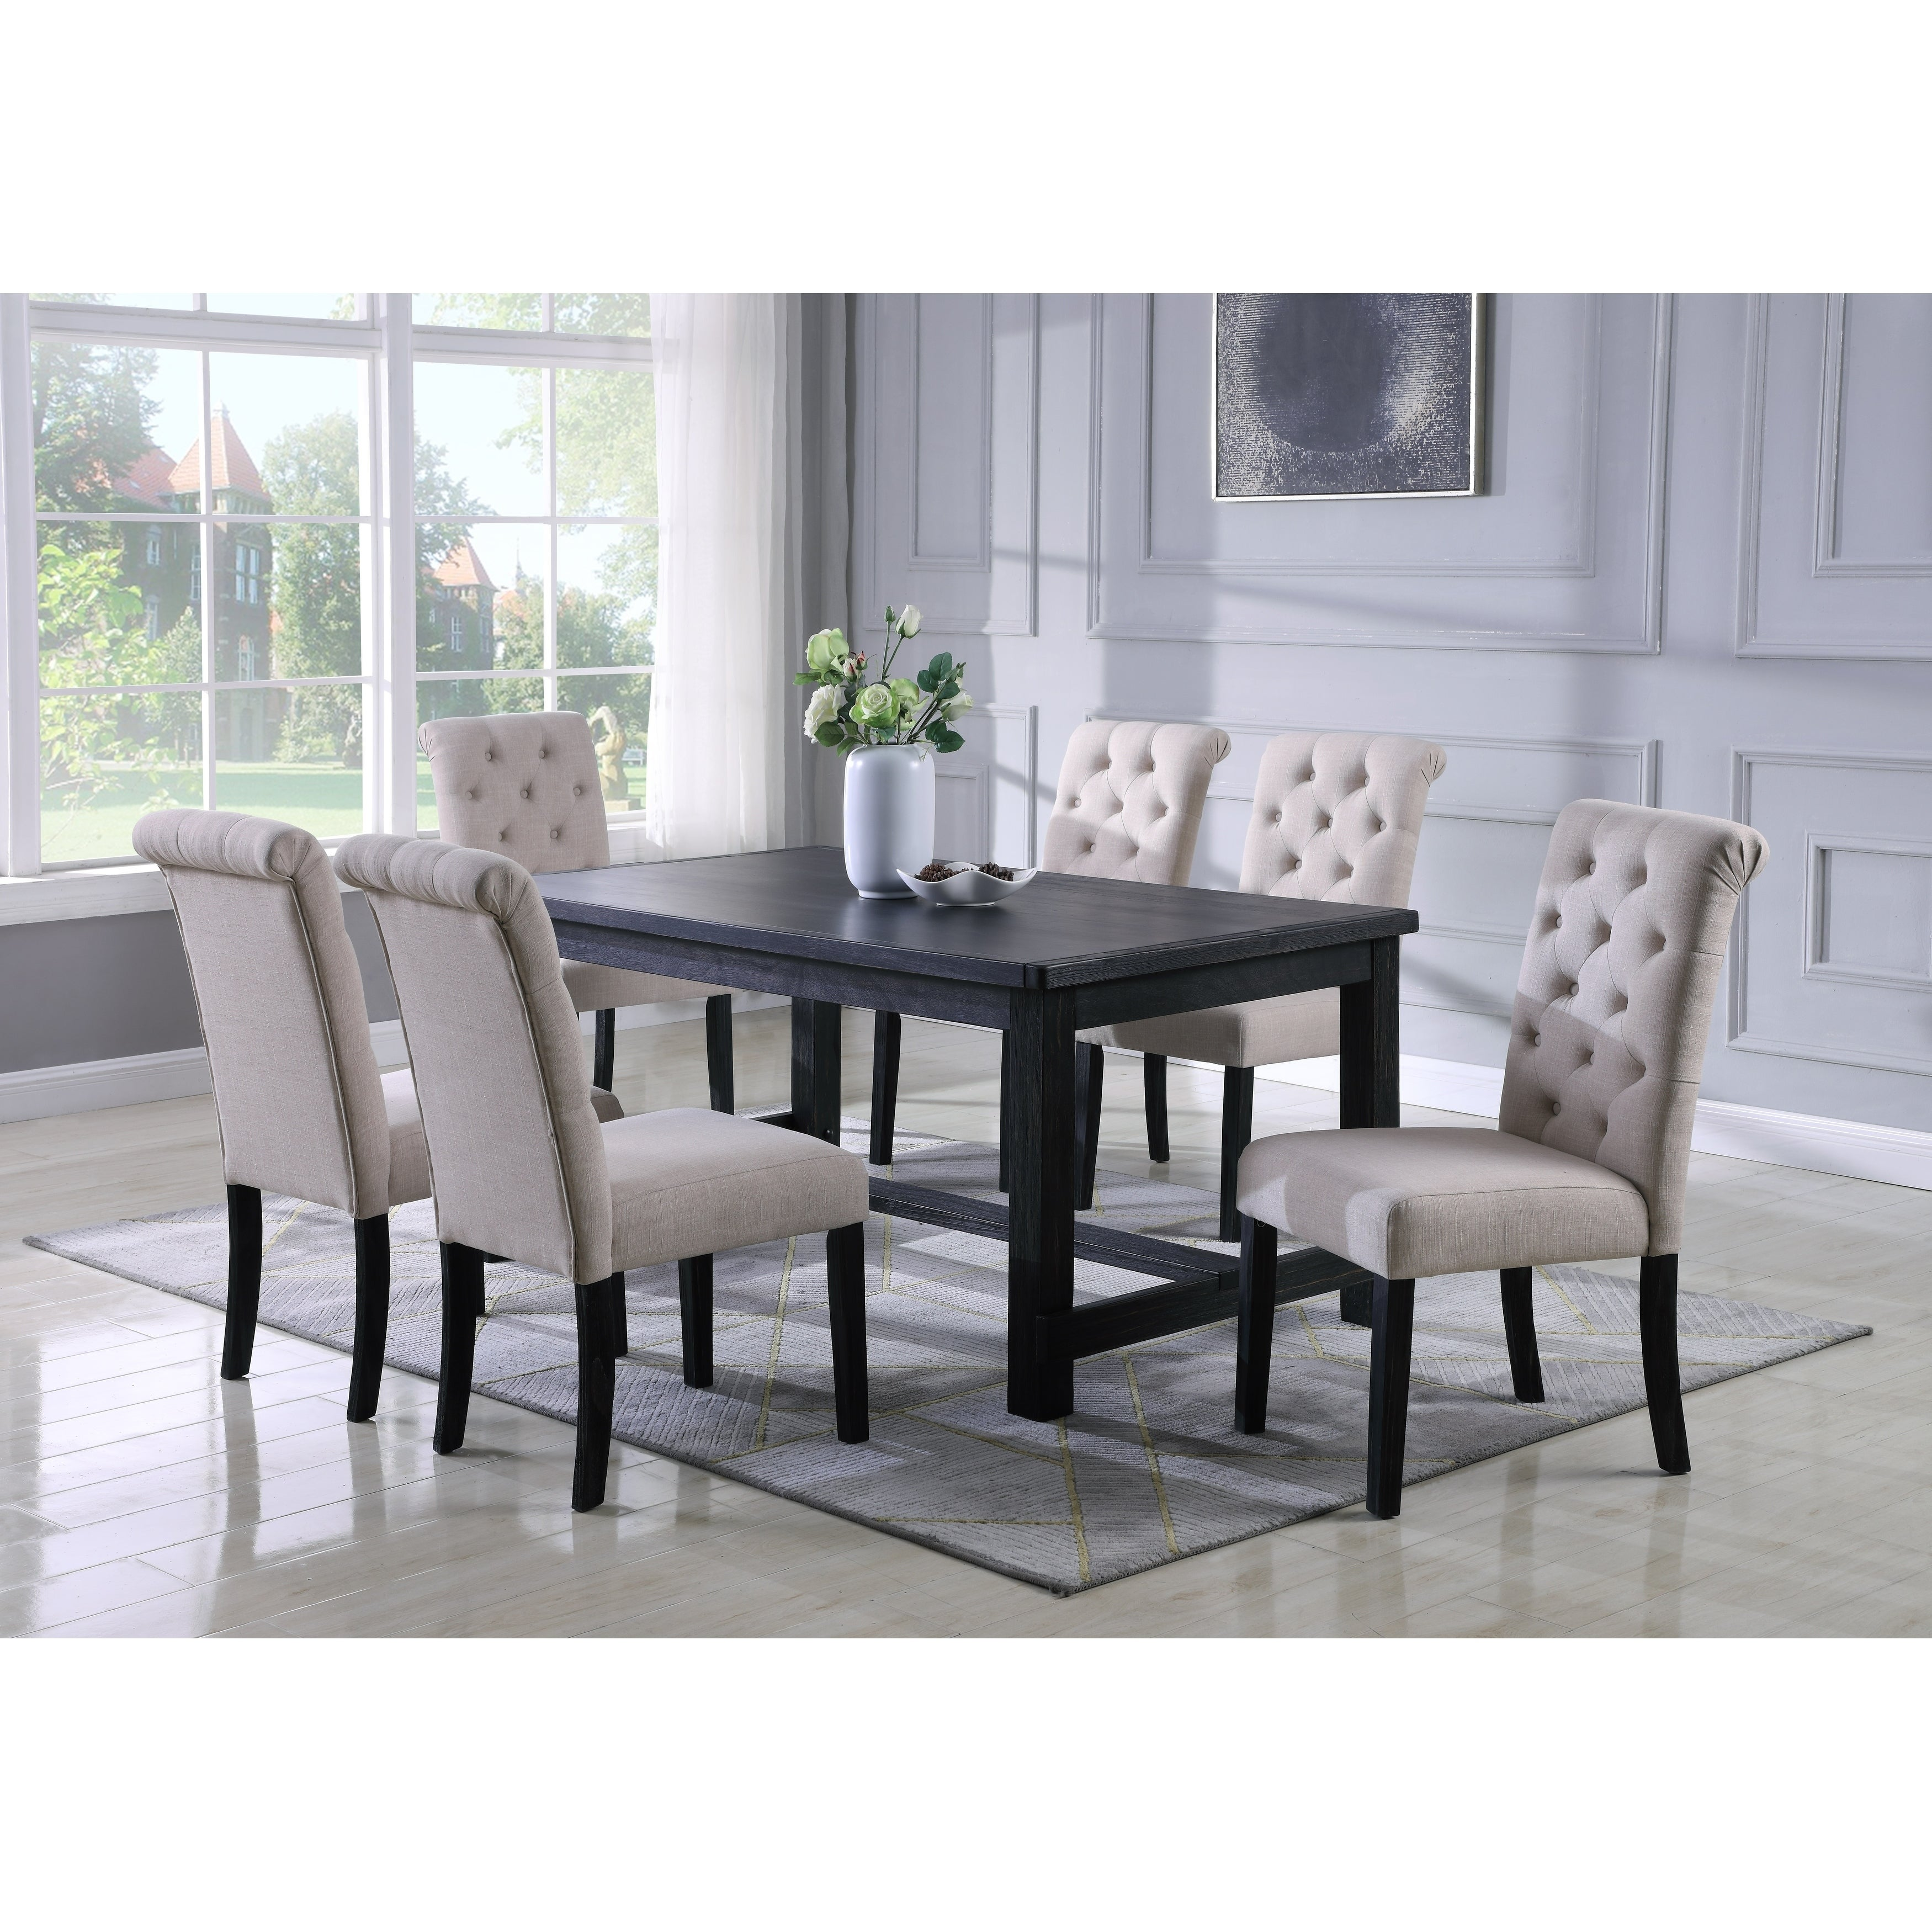 Swell Leviton Antique Black Finished Wood Dining Set Table With Six Chair Gray Ibusinesslaw Wood Chair Design Ideas Ibusinesslaworg